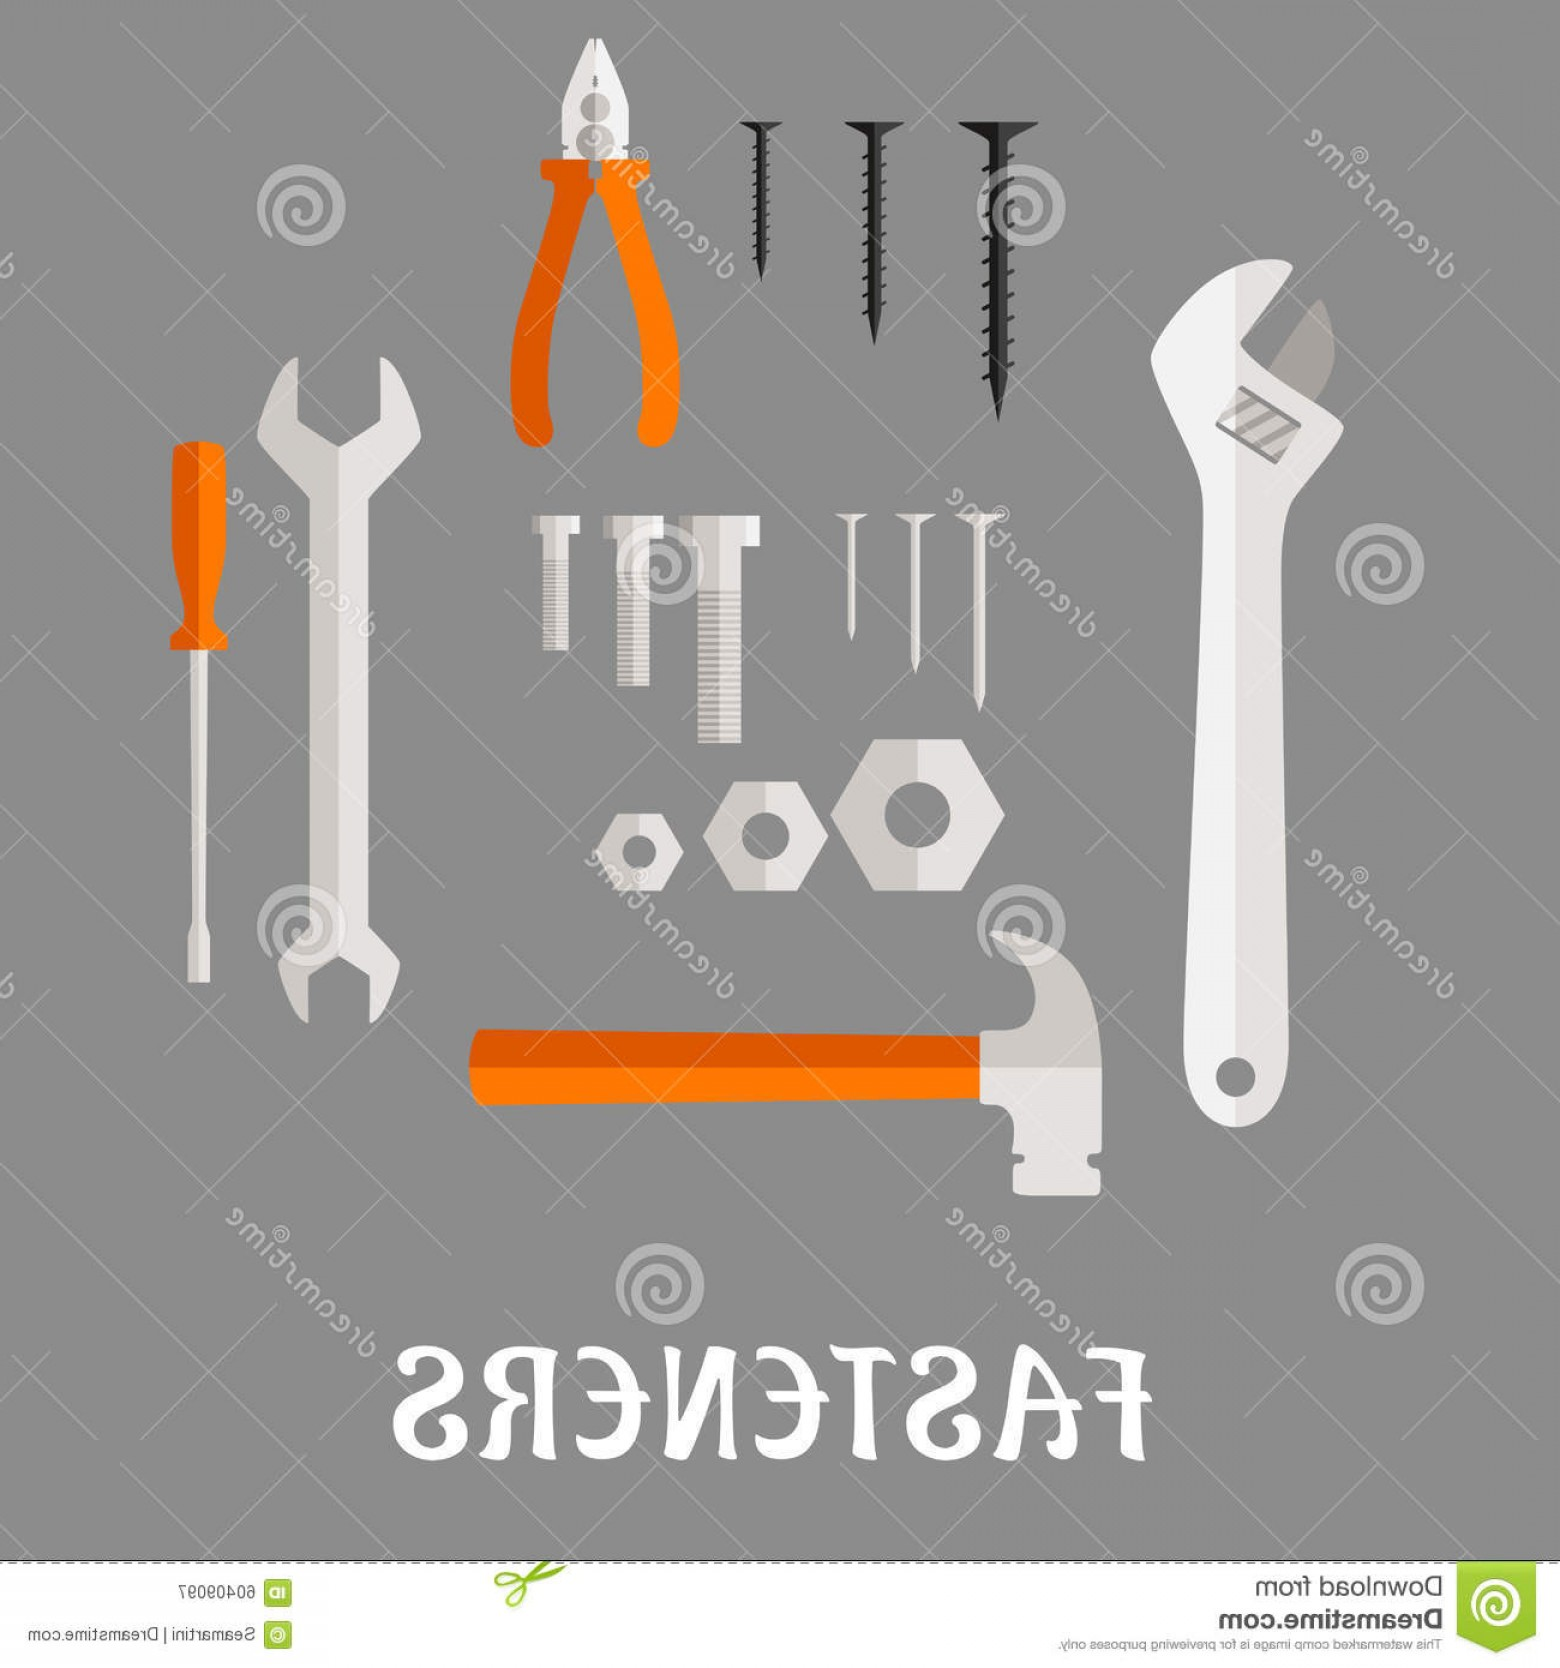 Fastener Vector: Stock Illustration Fasteners Tools Flat Icons Screws Nails Bolts Nuts Hammer Wrench Screwdriver Pliers Adjustable Spanner Gray Image